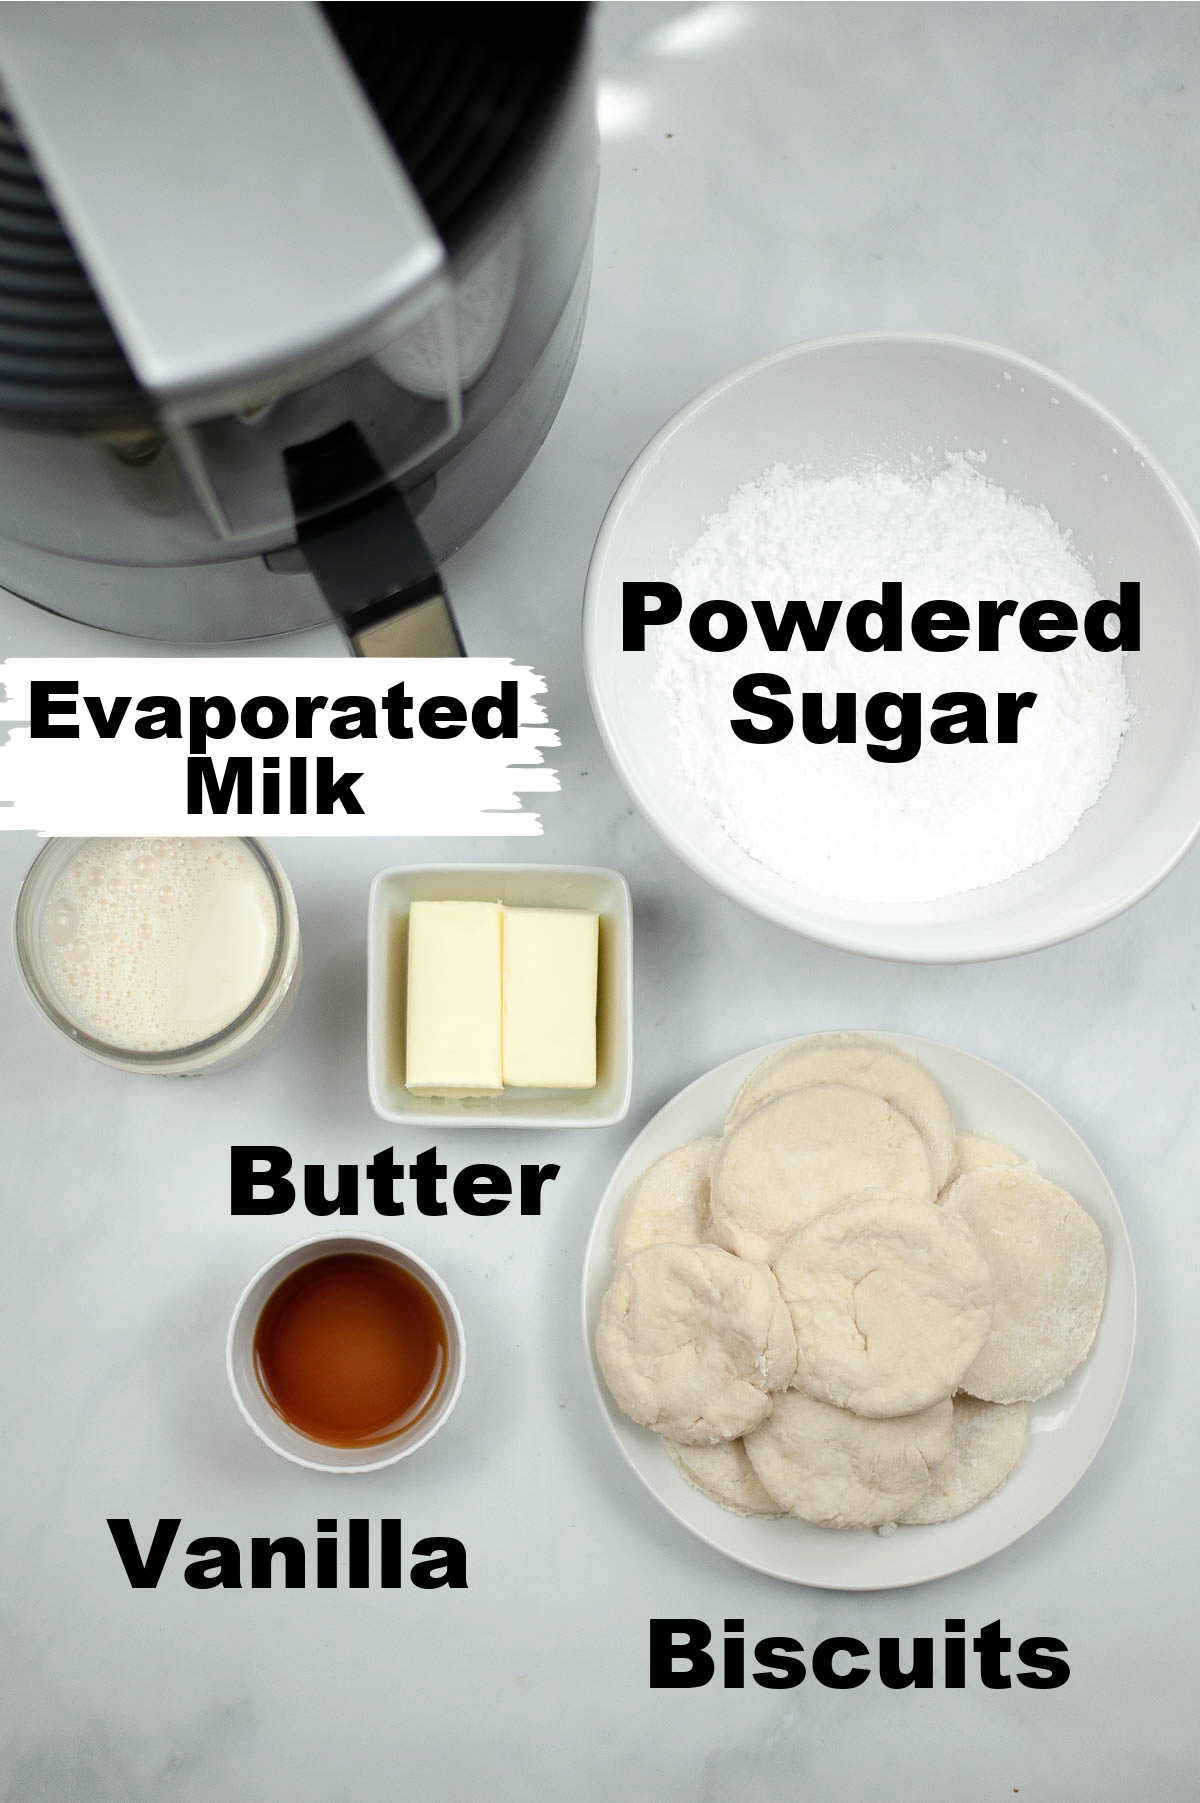 five ingredients laid out on a counter with labels.